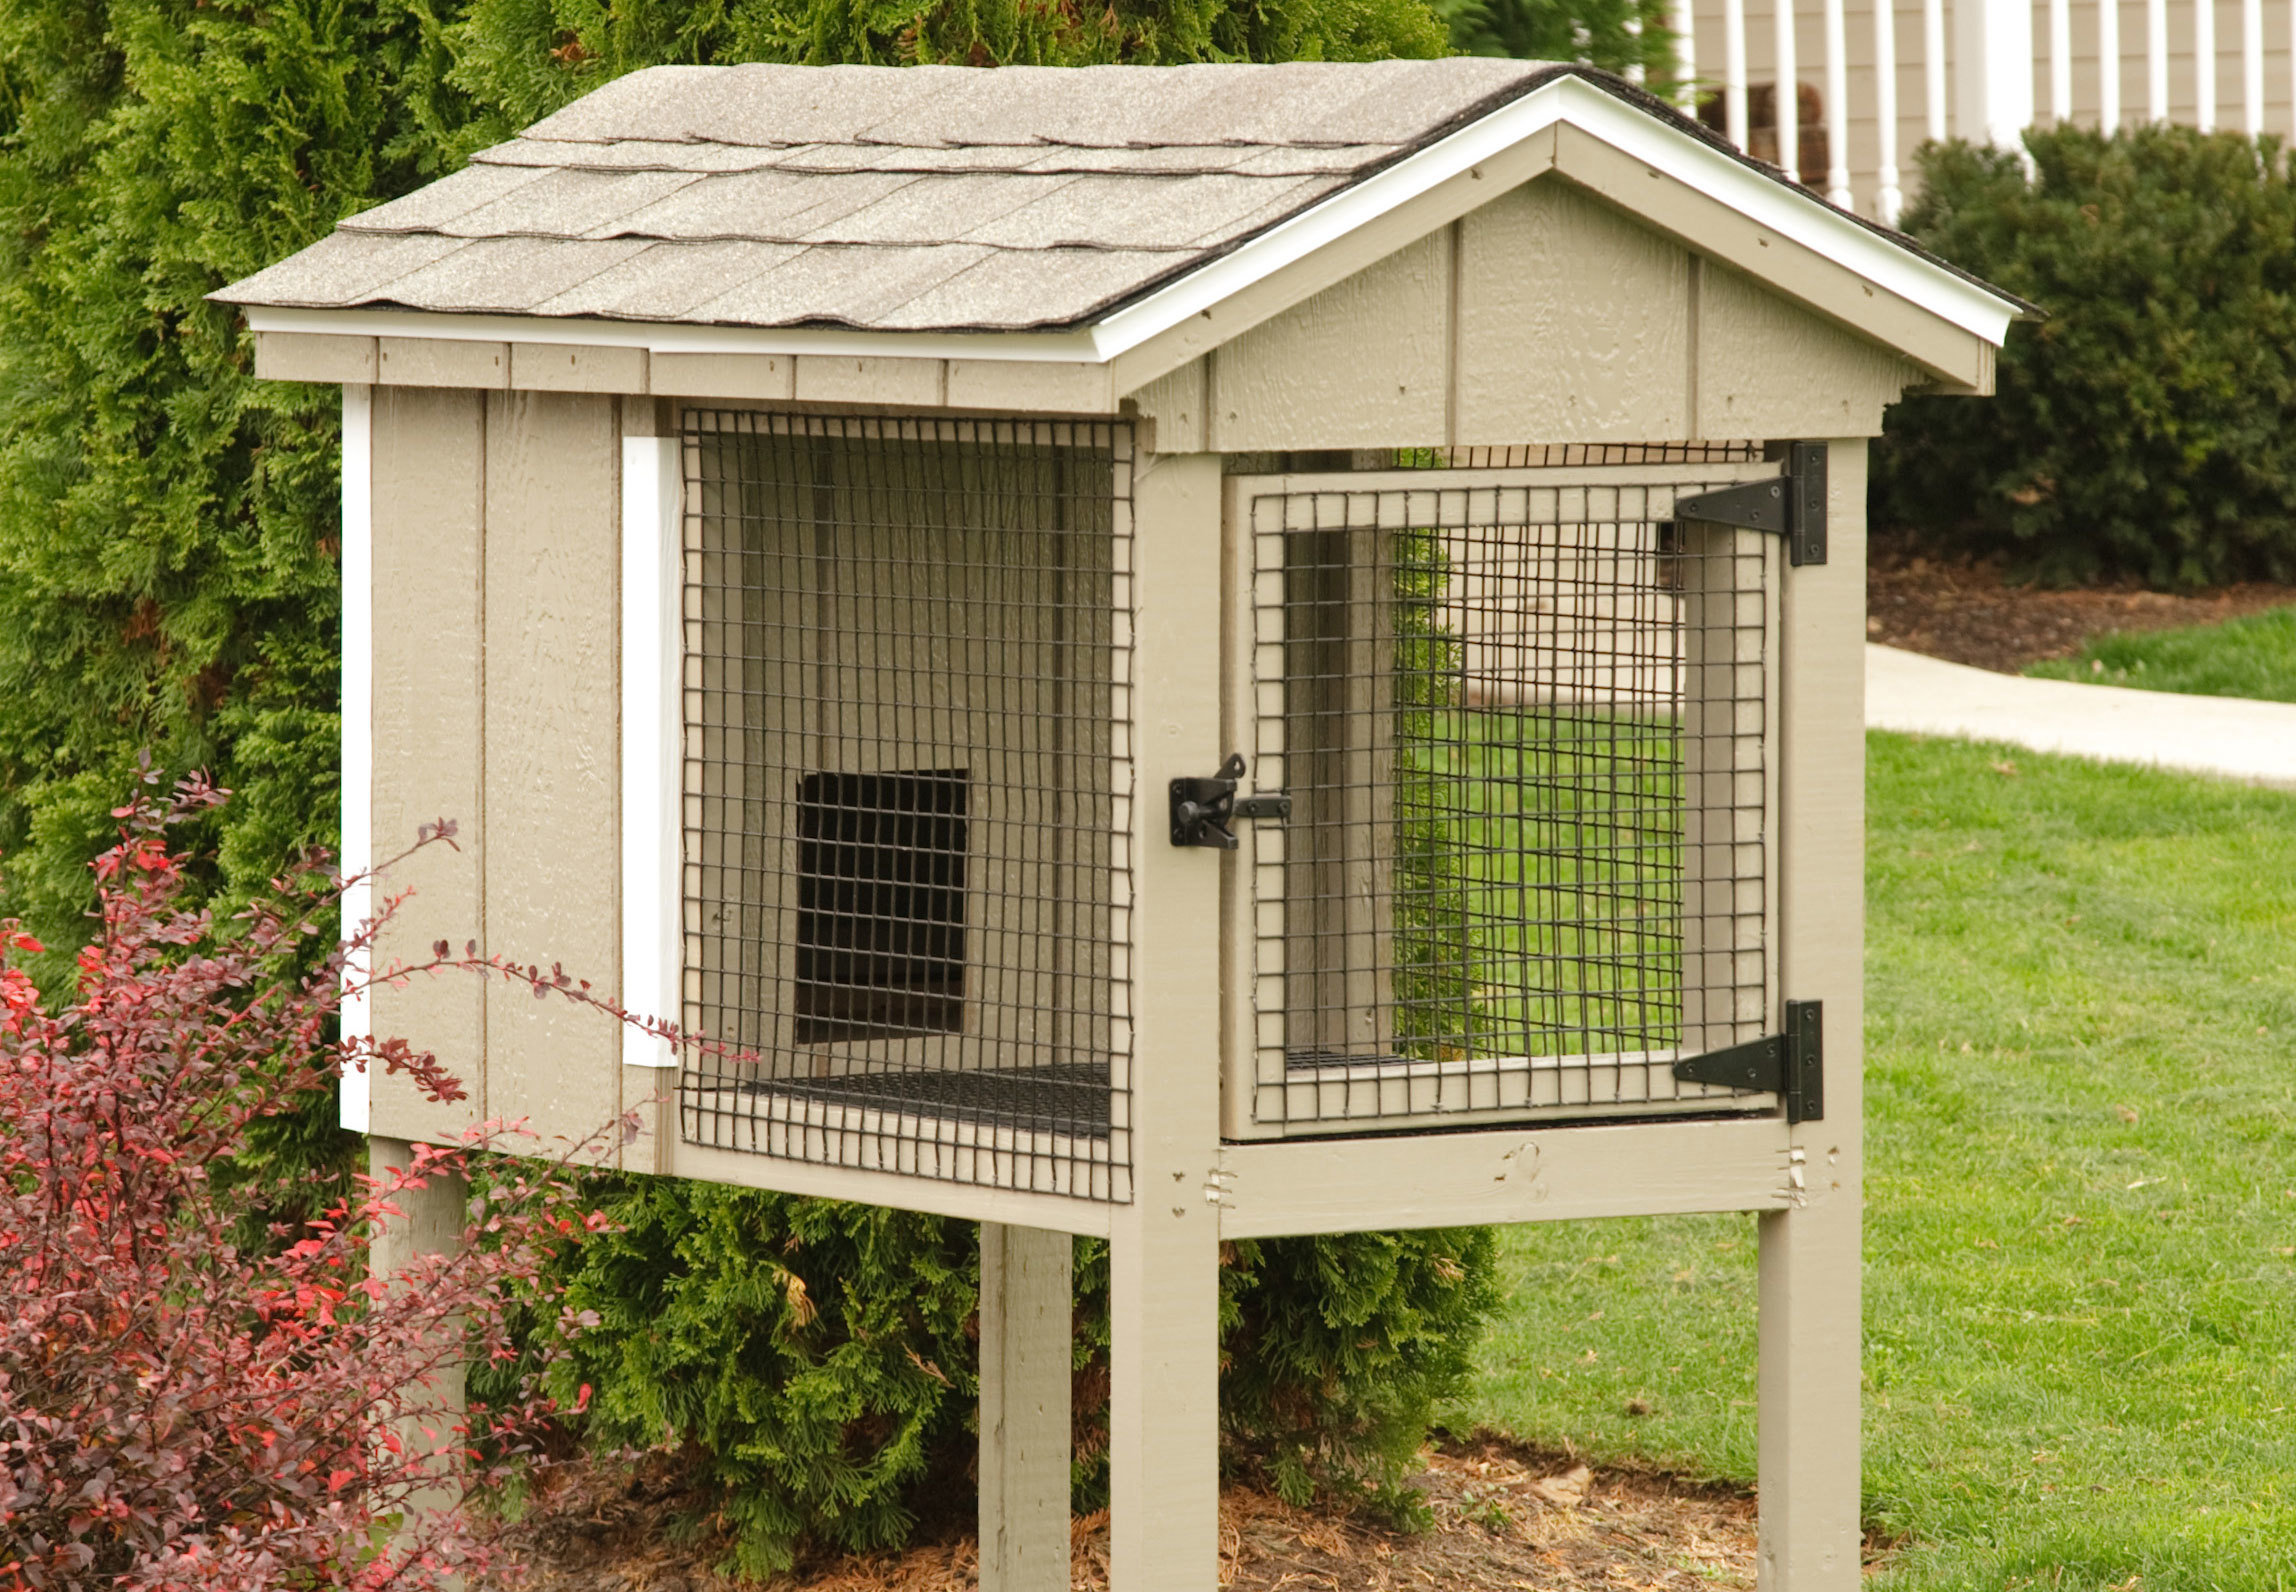 2x4 Single Rabbit Hutch with Painted Siding